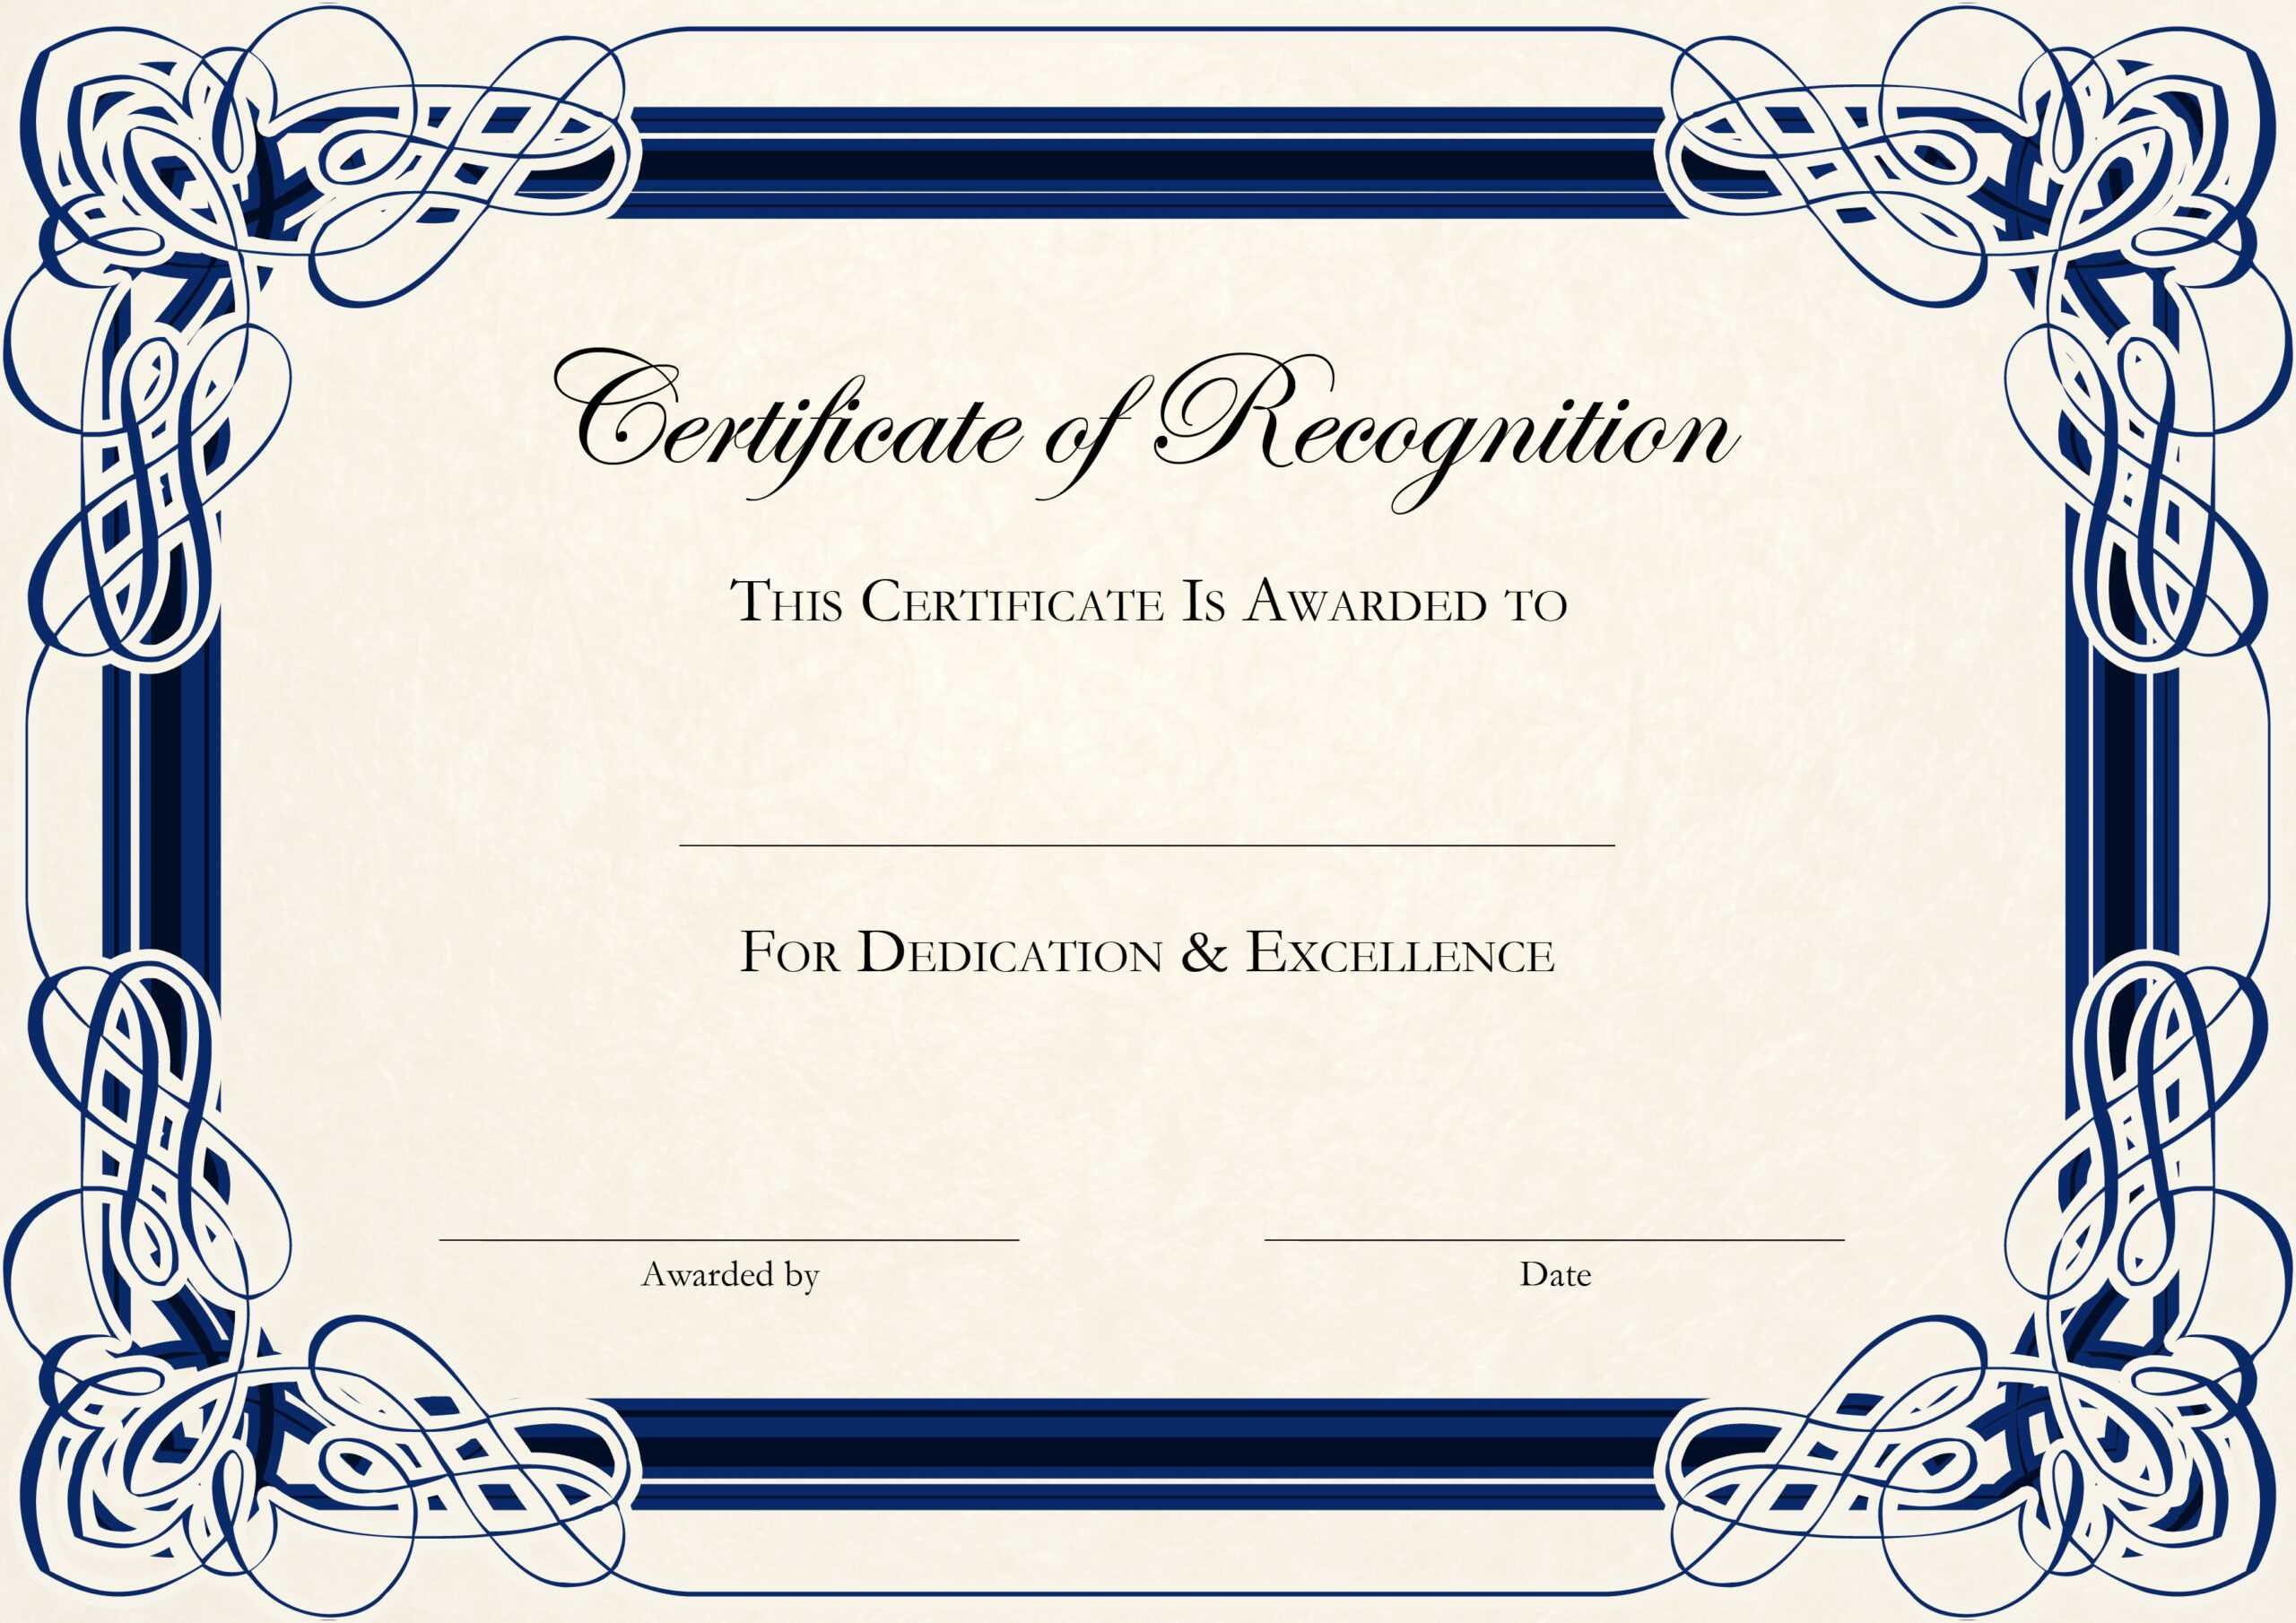 Pdf-Award-Authority-Certificate-Template intended for Certificate Authority Templates